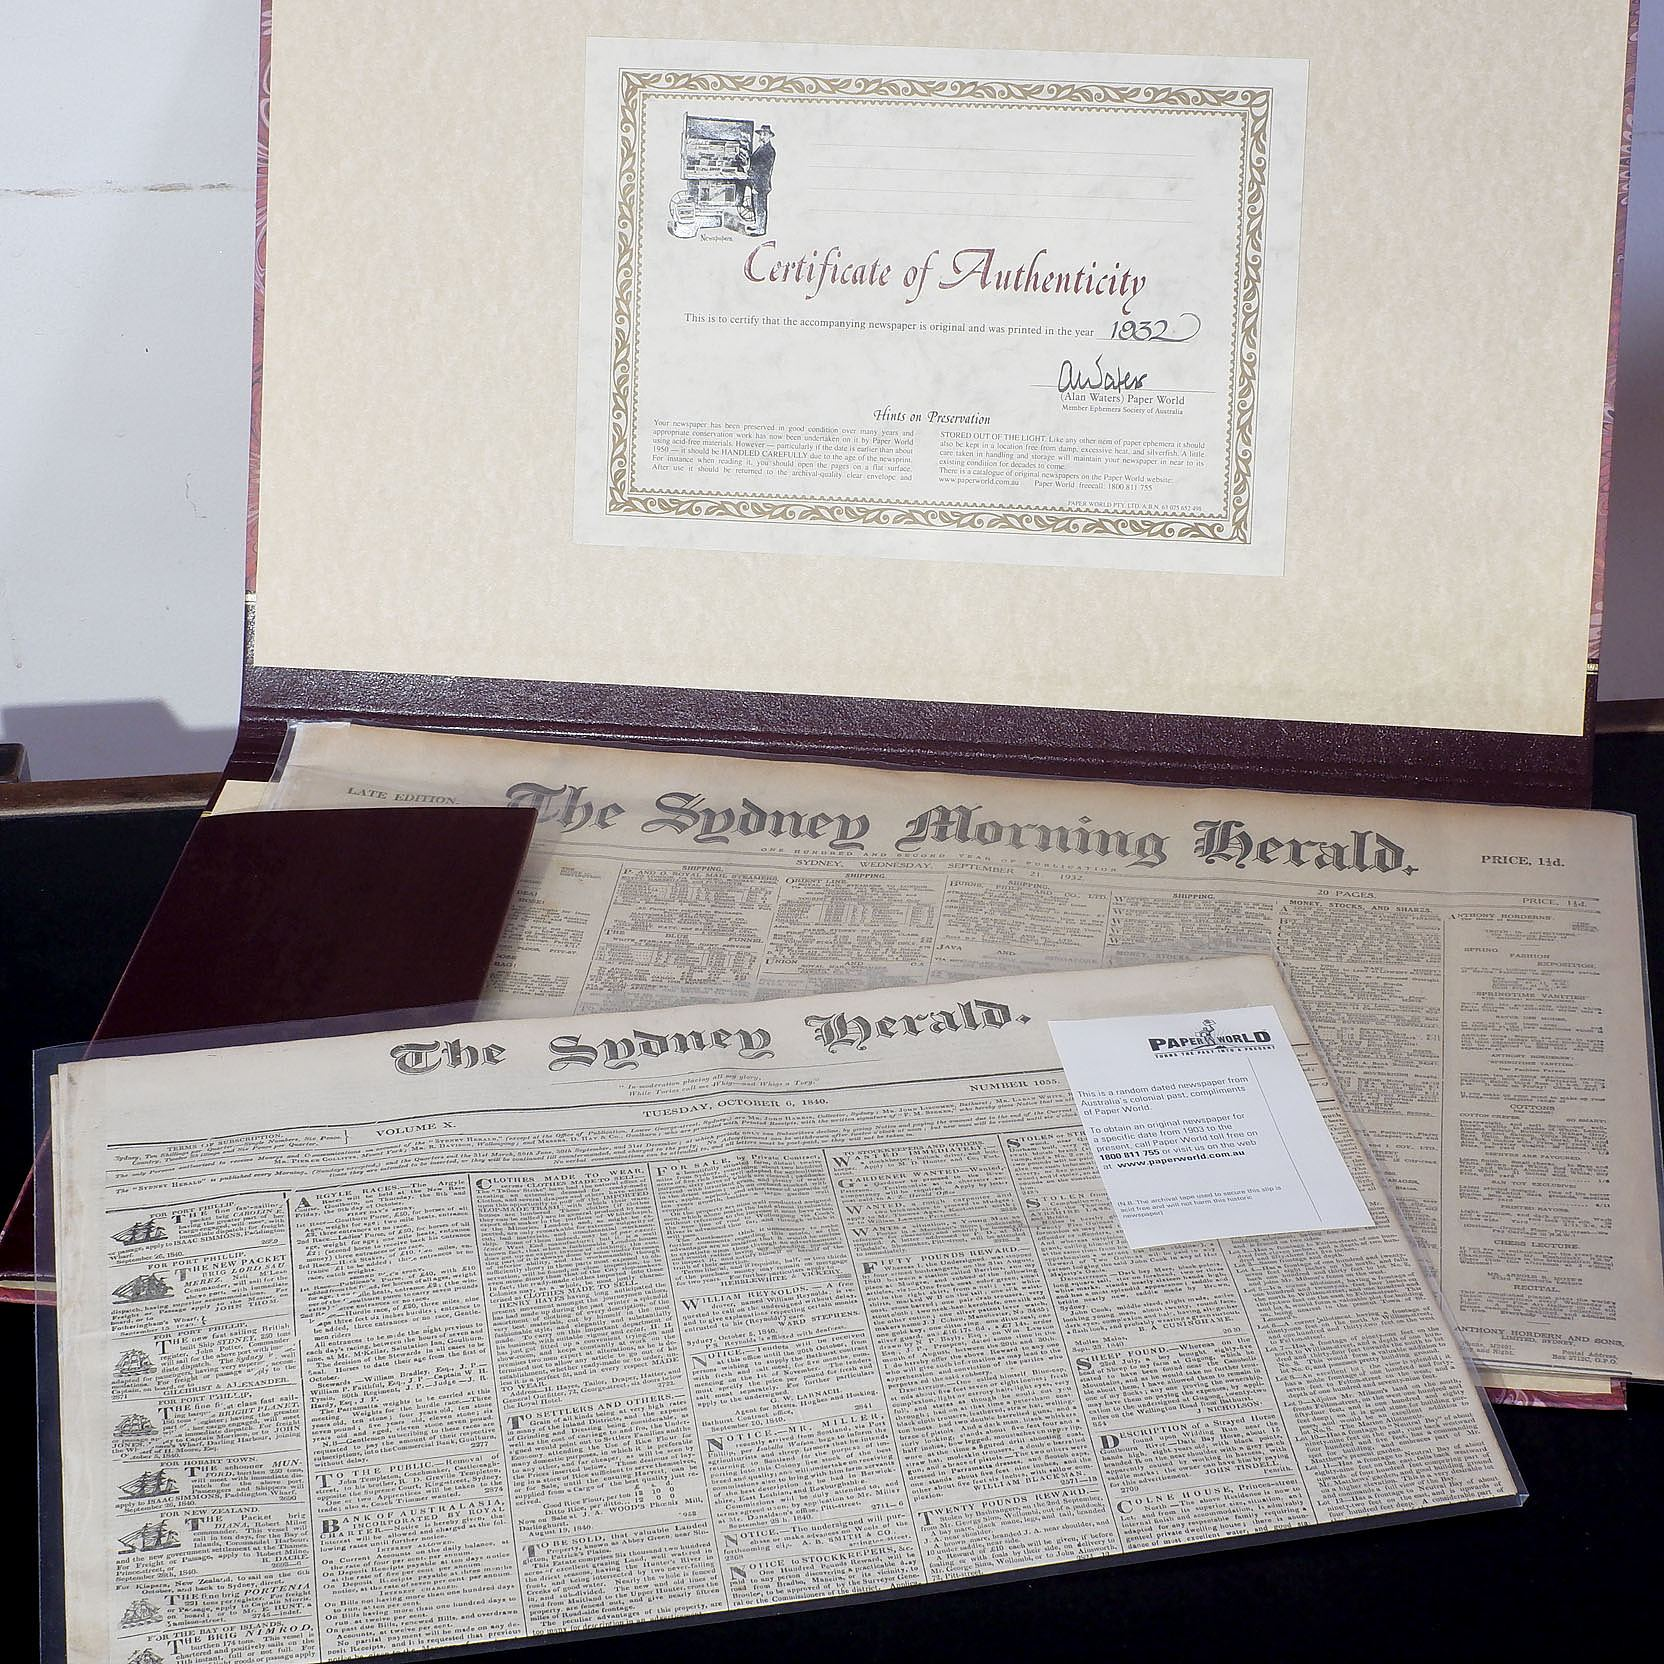 'Two Sydney Newspaper Excerpts Dated 1840 and 1932'